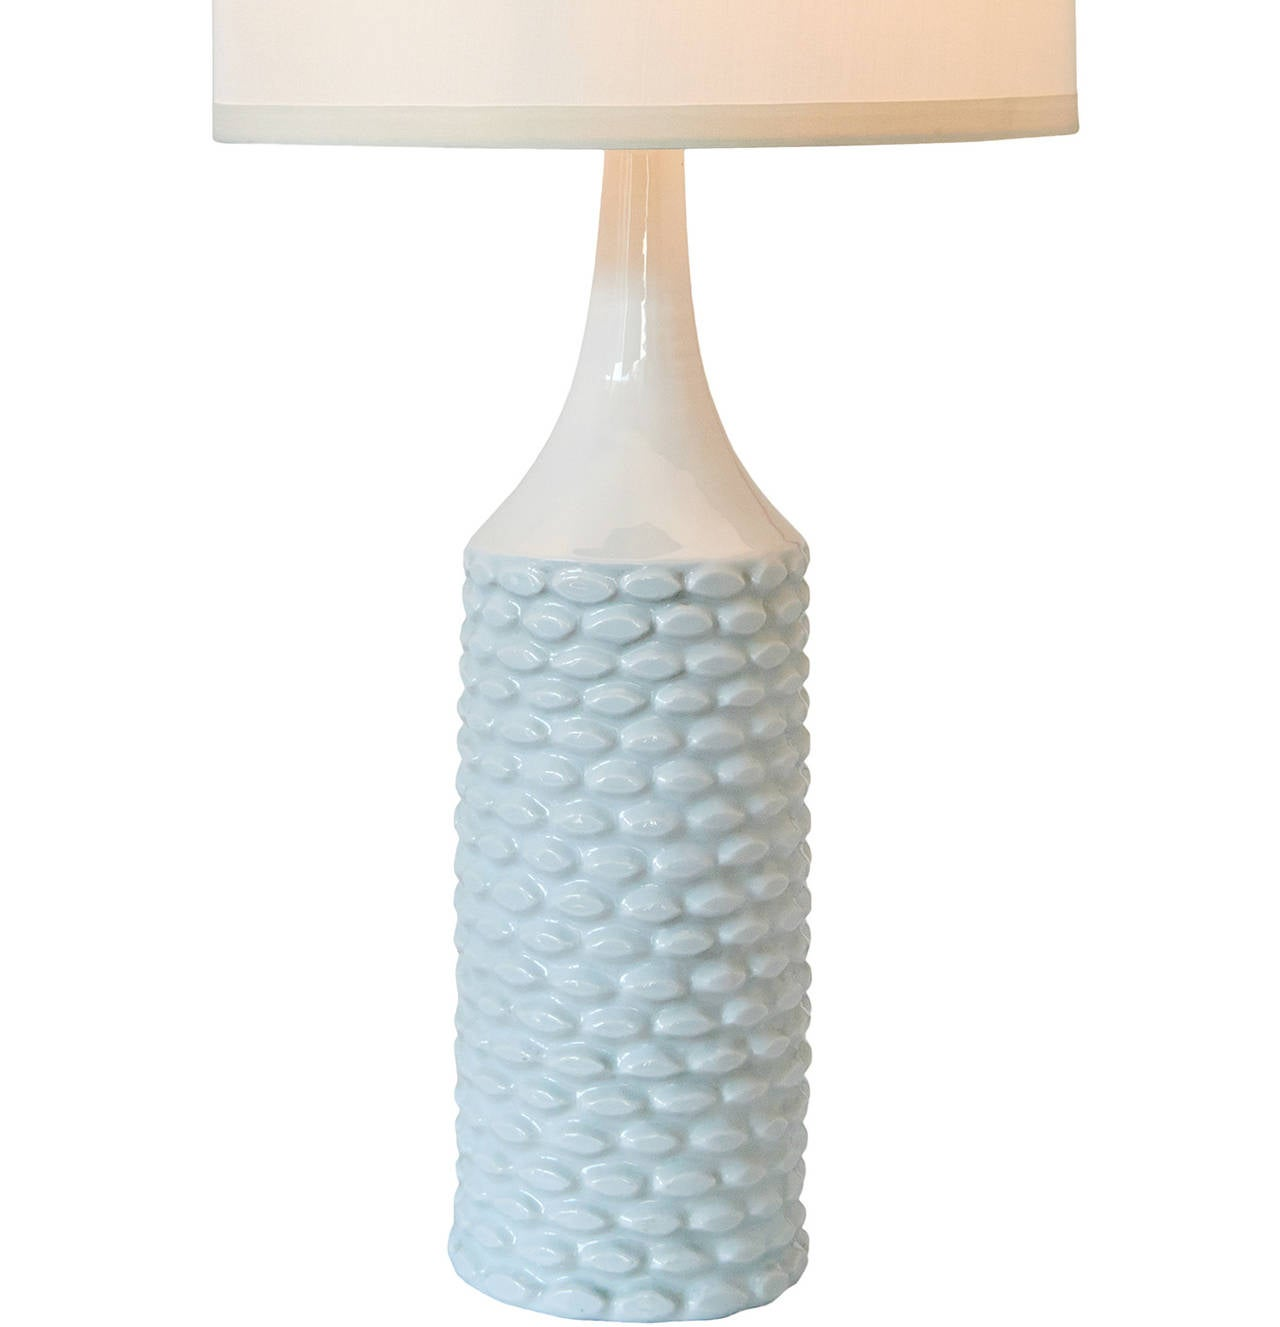 1940 Table Lamp by Axel Salto 6